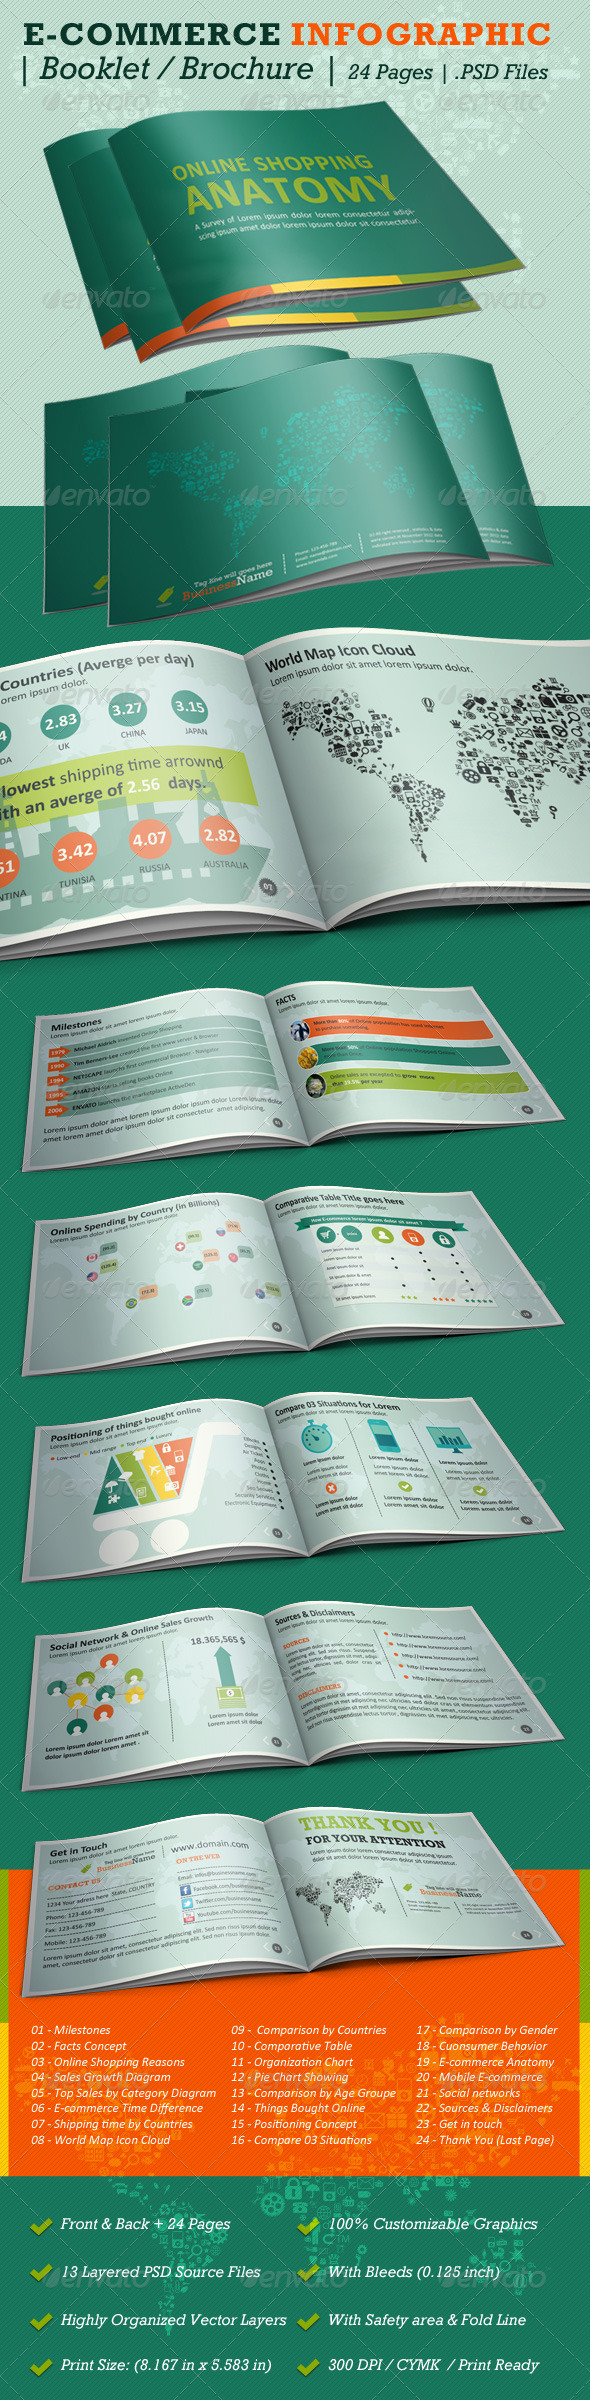 GraphicRiver E-commerce Infographic Booklet 24 Pages 1569006